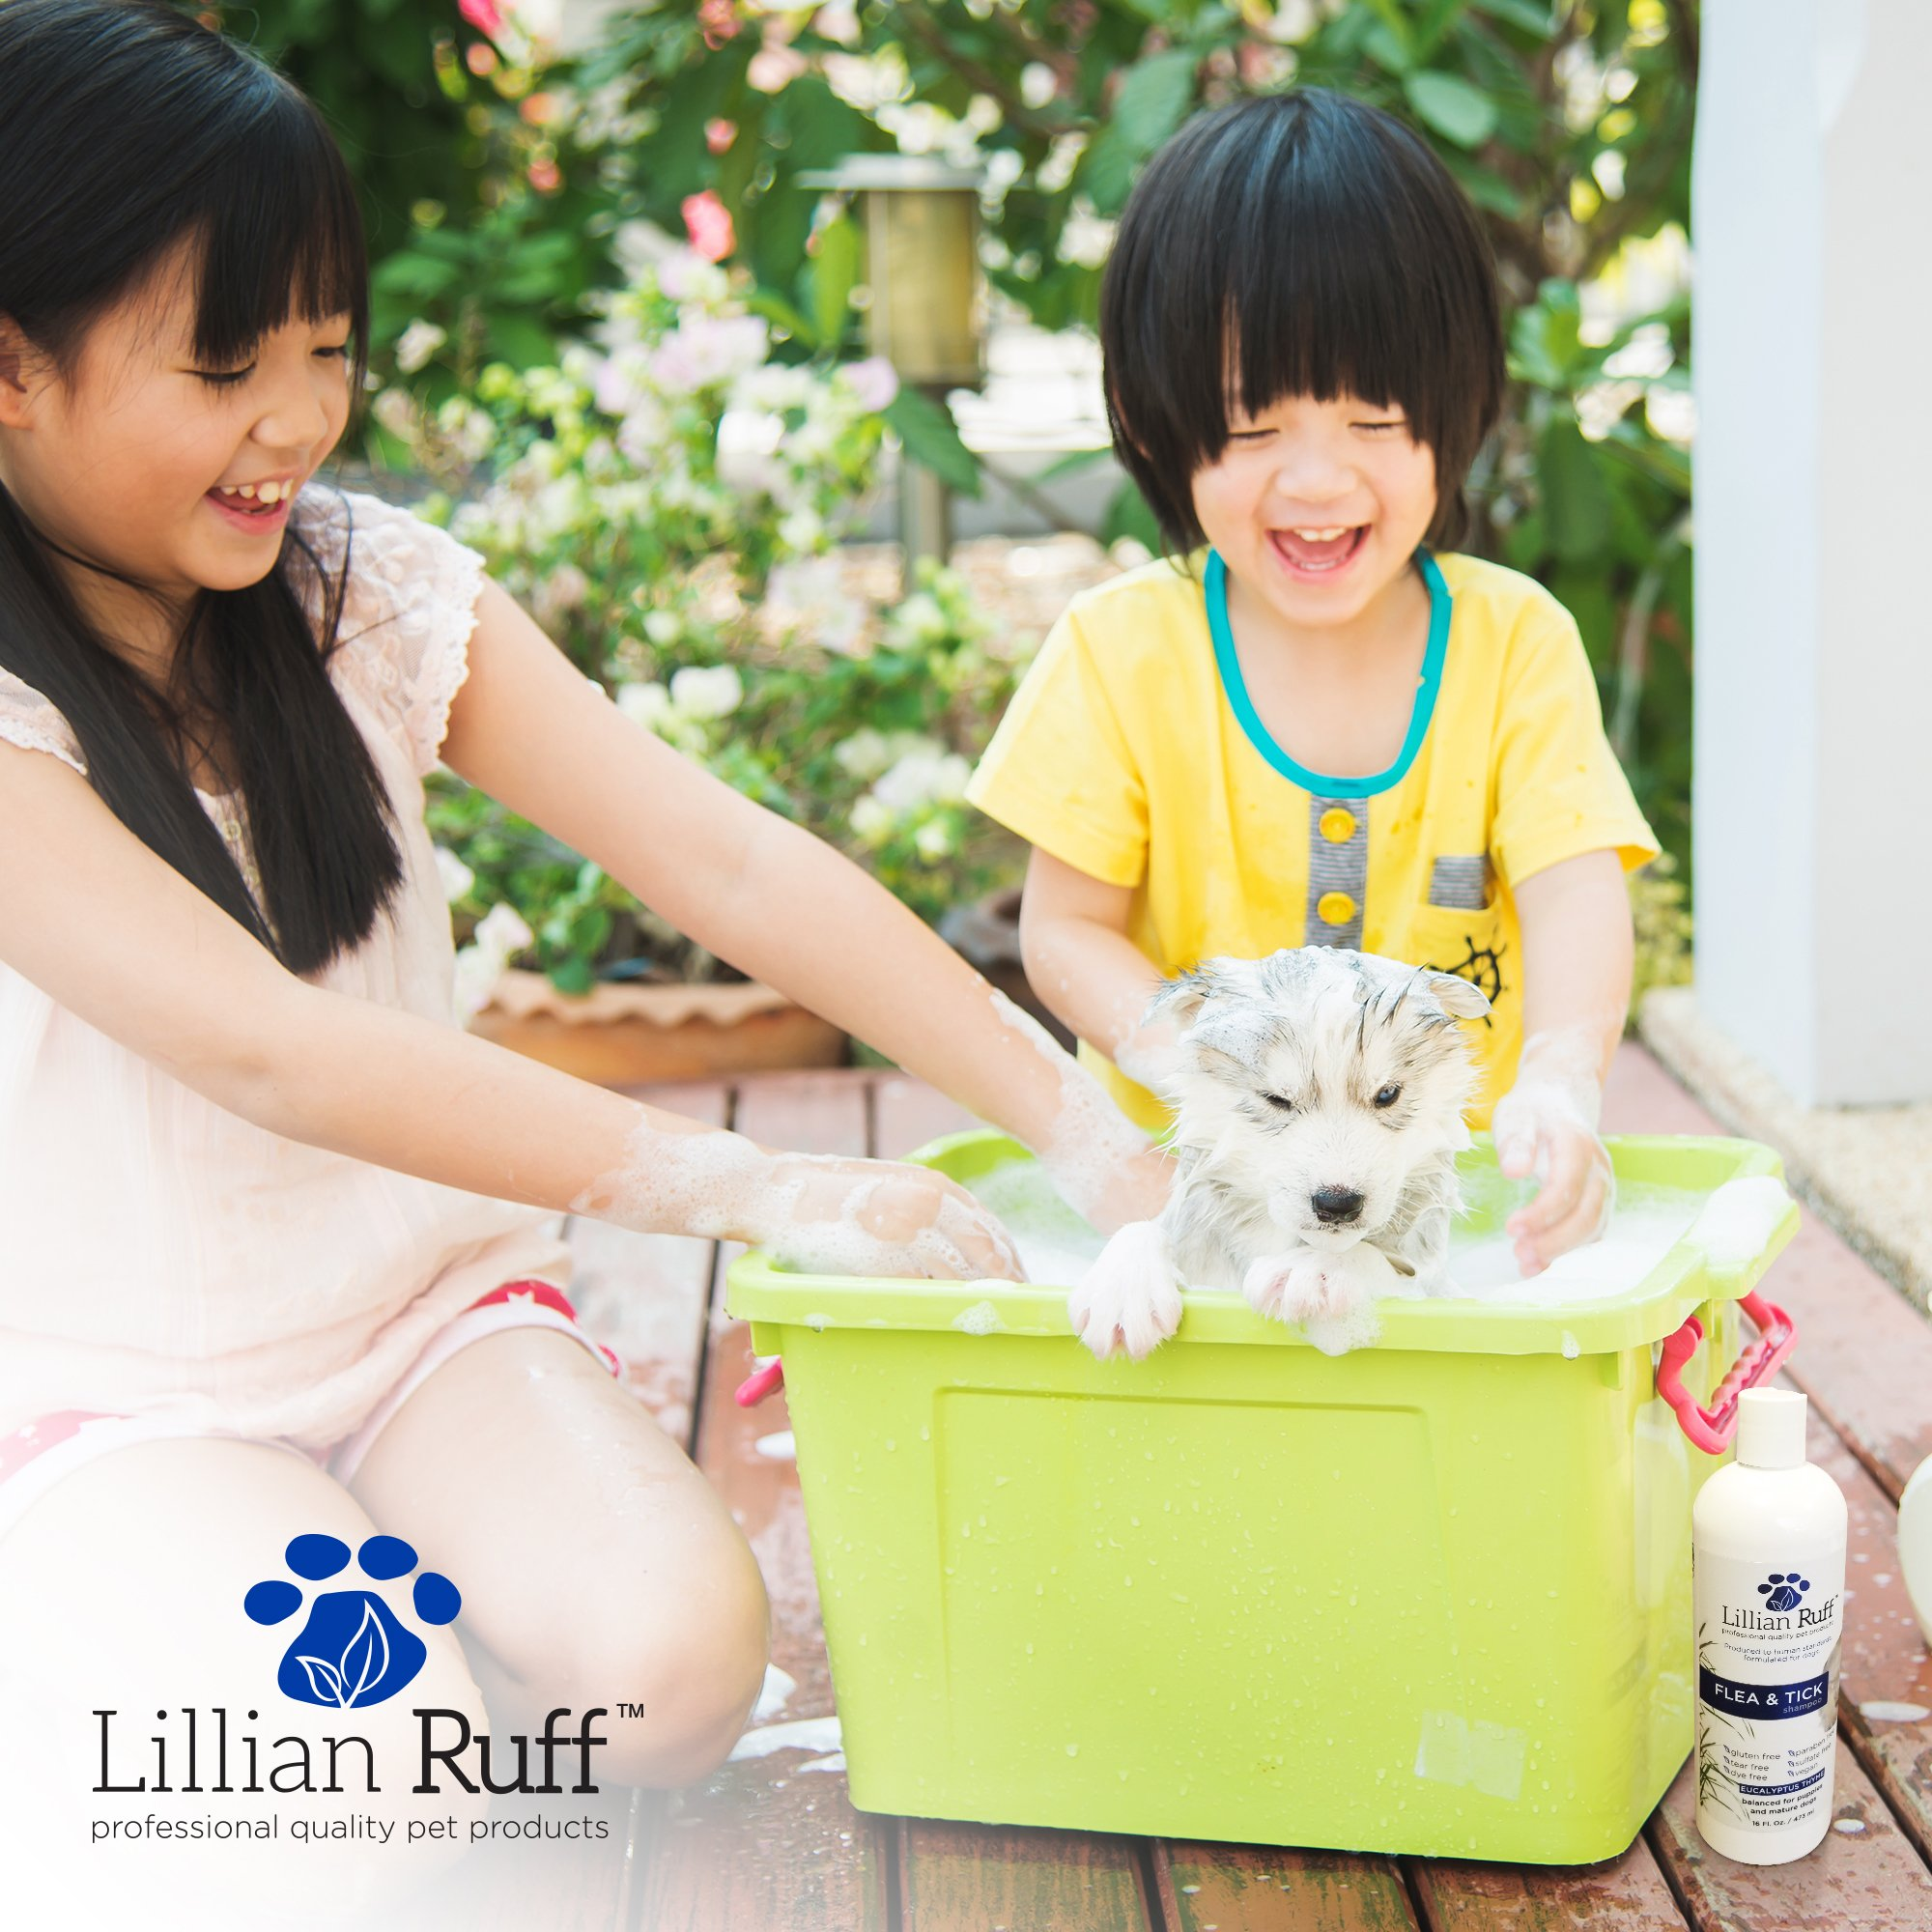 Lillian Ruff Flea and Tick Shampoo for Dogs with Aloe Vera - Soothe the Itch and Repel the Critters with Natural Essential Oils - Balanced for Puppies and Mature Dogs (16oz) by Lillian Ruff (Image #5)